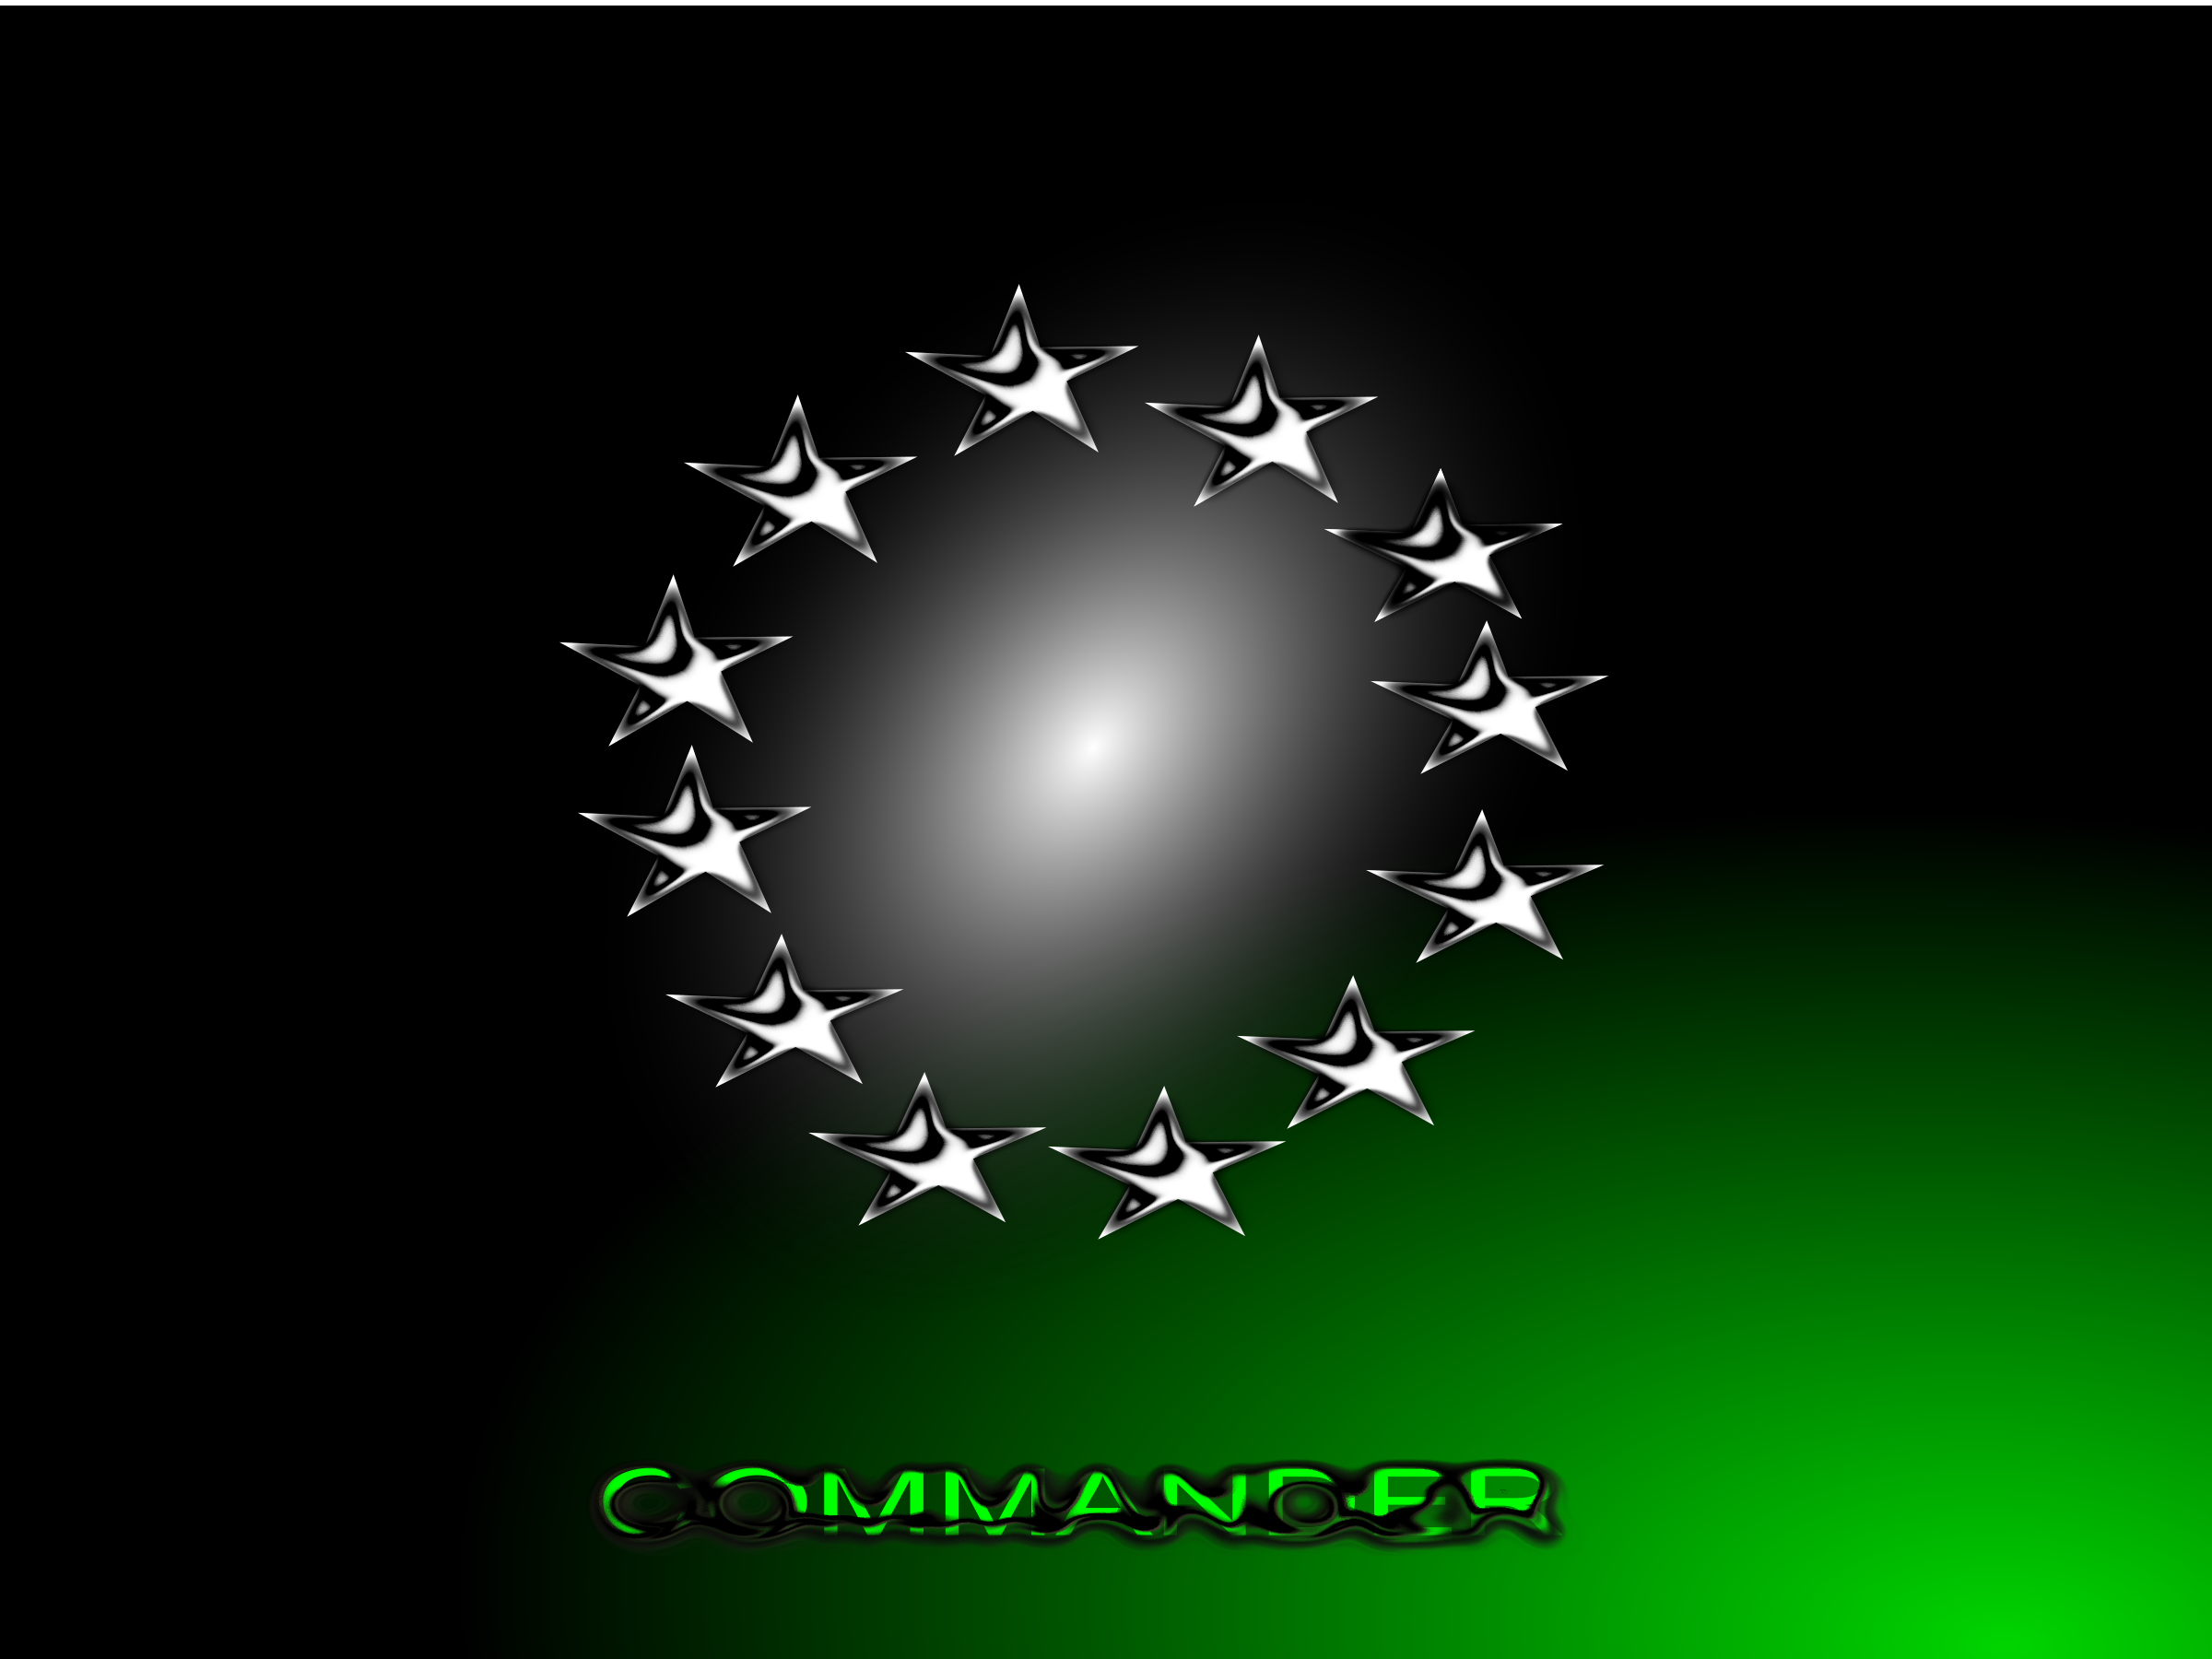 Commander Wallpaper by X-Ray